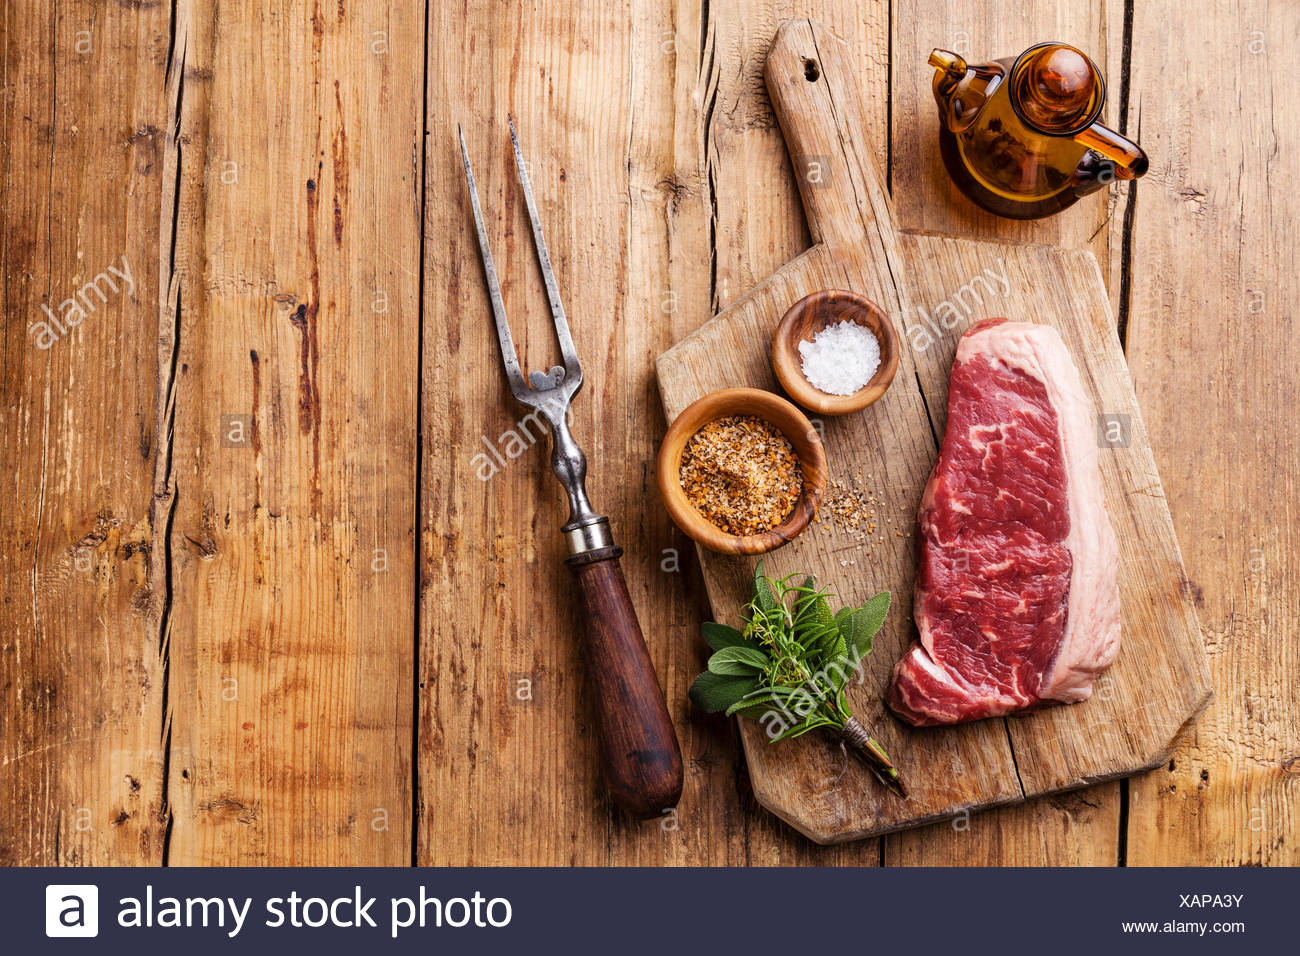 Raw fresh meat of South American premium beef New York steak Striploin on wooden background - Stock Image